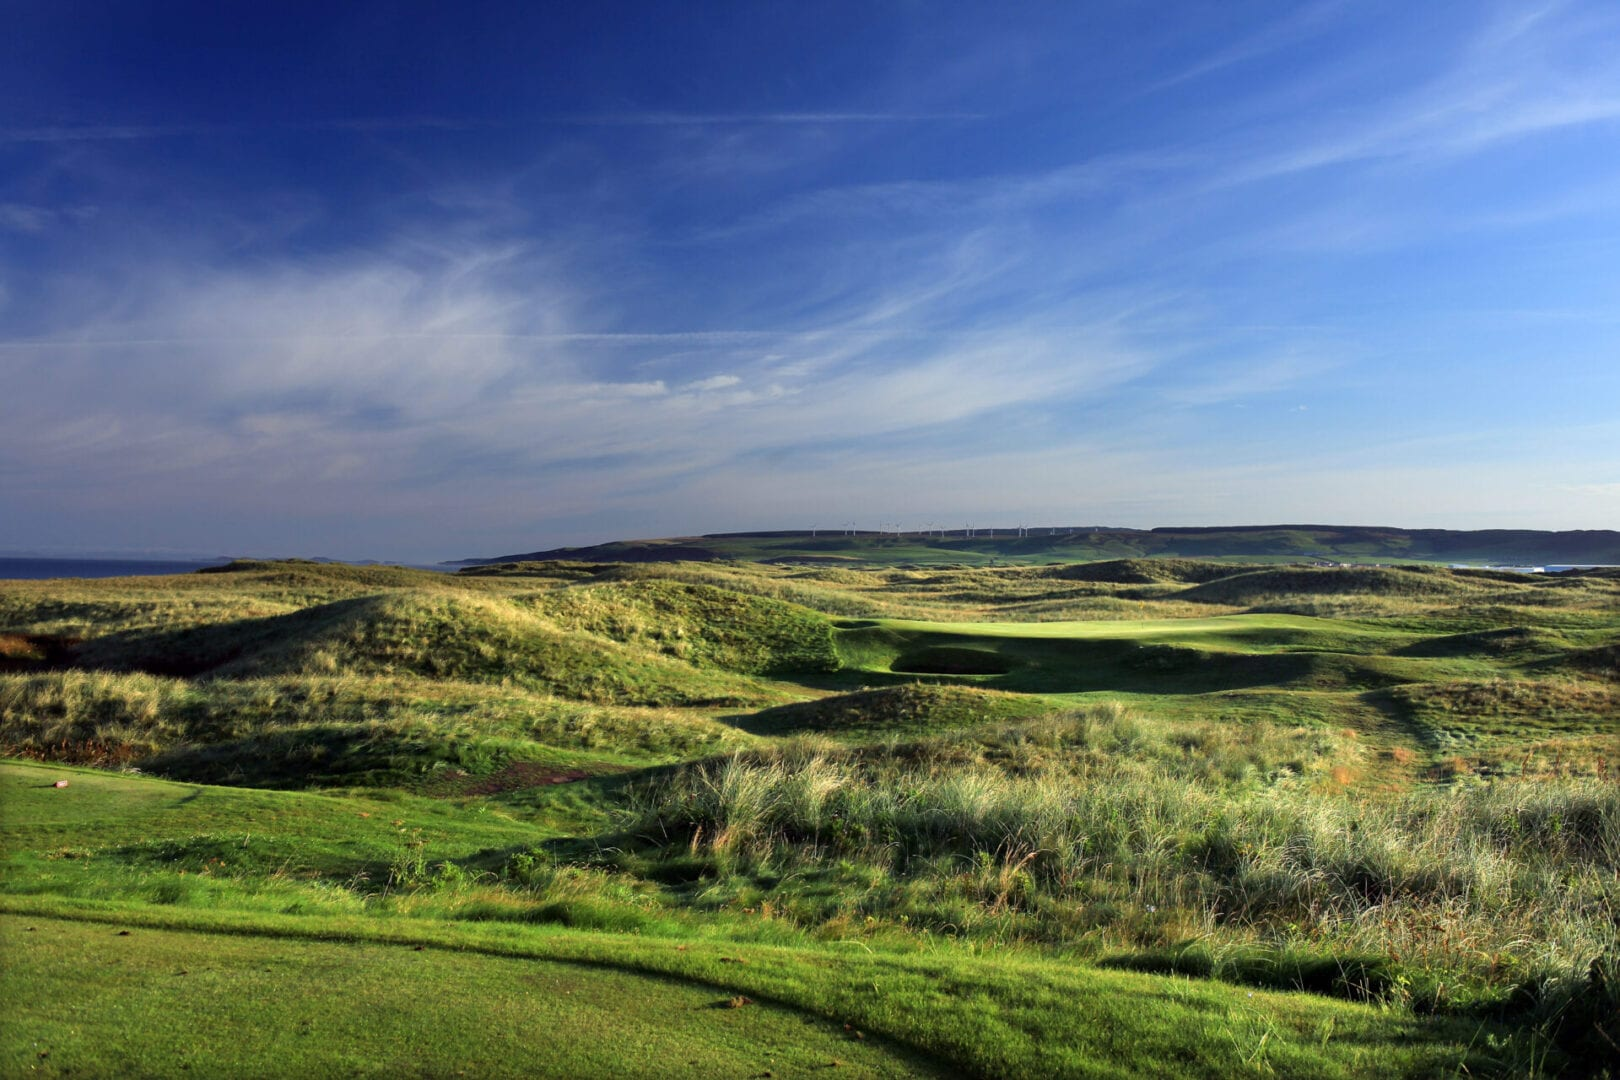 MACHRIHANISH, SCOTLAND - AUGUST 31: The 121 yards, par 3, 4th hole 'Jura' at The Machrihanish Golf Club on August 31, 2010 in Machrihanish, Scotland.  (Photo by David Cannon/Getty Images)